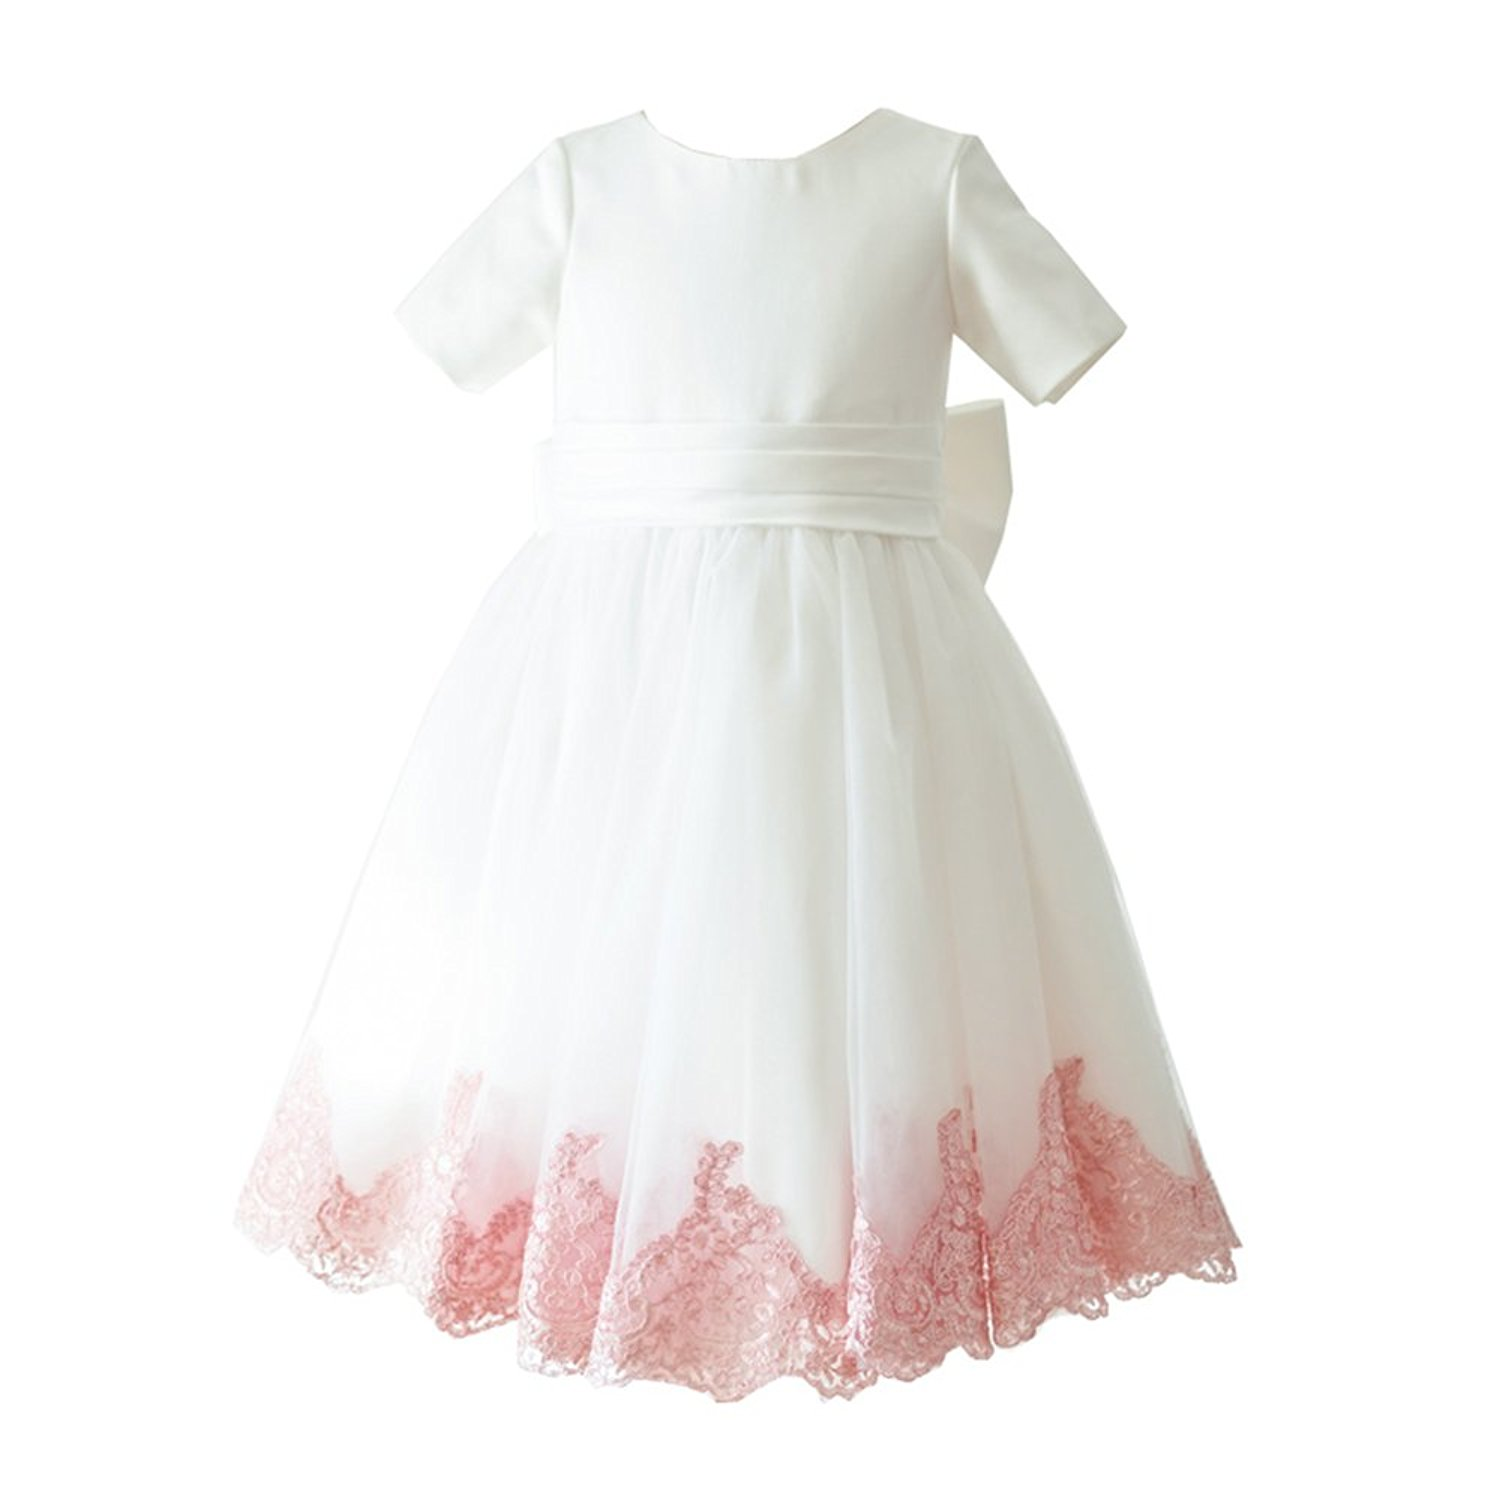 7fbe4a81a Get Quotations · Miama Ivory Lace Tulle Short Sleeves Wedding Flower Girl  Dress Junior Bridesmaid Dress